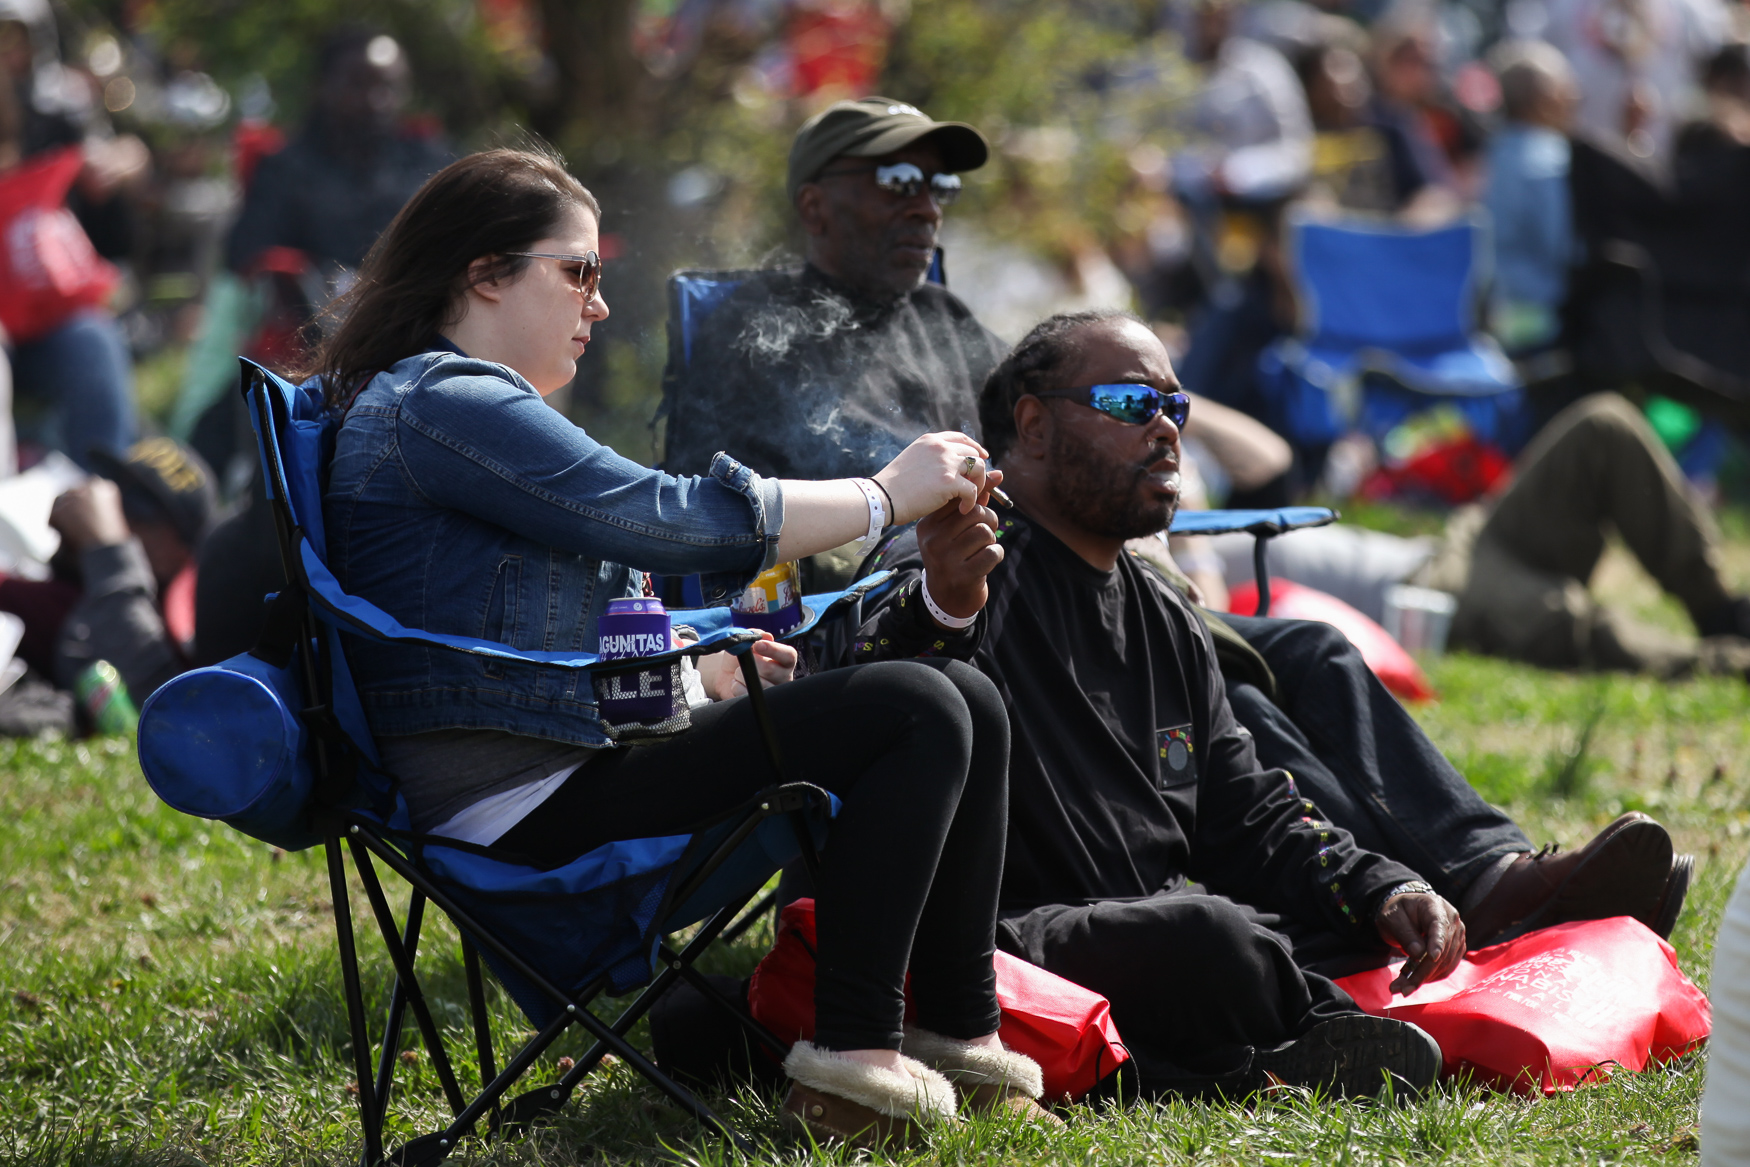 Thousands of DMV residents flocked to the{ } 3rd Annual National Cannabis Festival at RFK Stadium on April 21. The sold-out festival featured musical acts, a joint rolling competition, yoga, glass-blowing demonstrations and, of course, cannabis for both medical patients and recreational users. The festival wasn't just about celebrating 4/20 - there were voter registration booths on site and seminars on cannabis both policy and the criminal justice system.{ } Congresswoman Eleanor Holmes Norton also made an appearance to push for the legalization of all cannabis, nationwide. (Amanda Andrade-Rhoades/DC Refined)